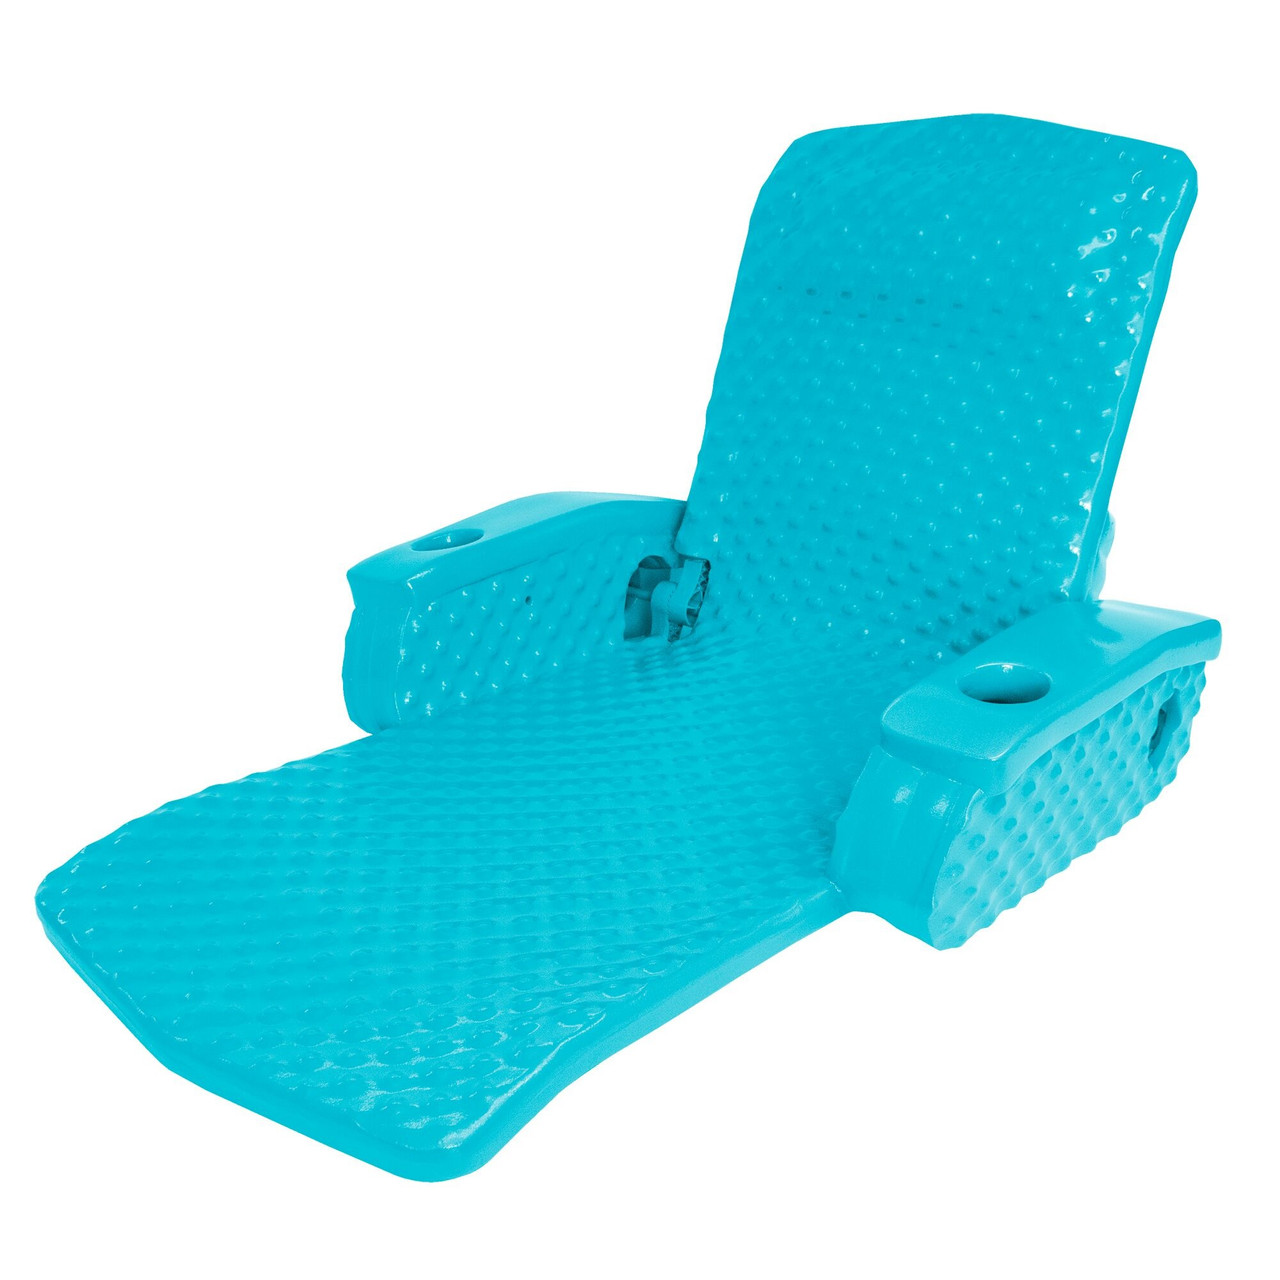 Surprising 69 Tropical Teal Super Soft Adjustable Recliner Swimming Pool Lounge Chair 32787824 Cjindustries Chair Design For Home Cjindustriesco